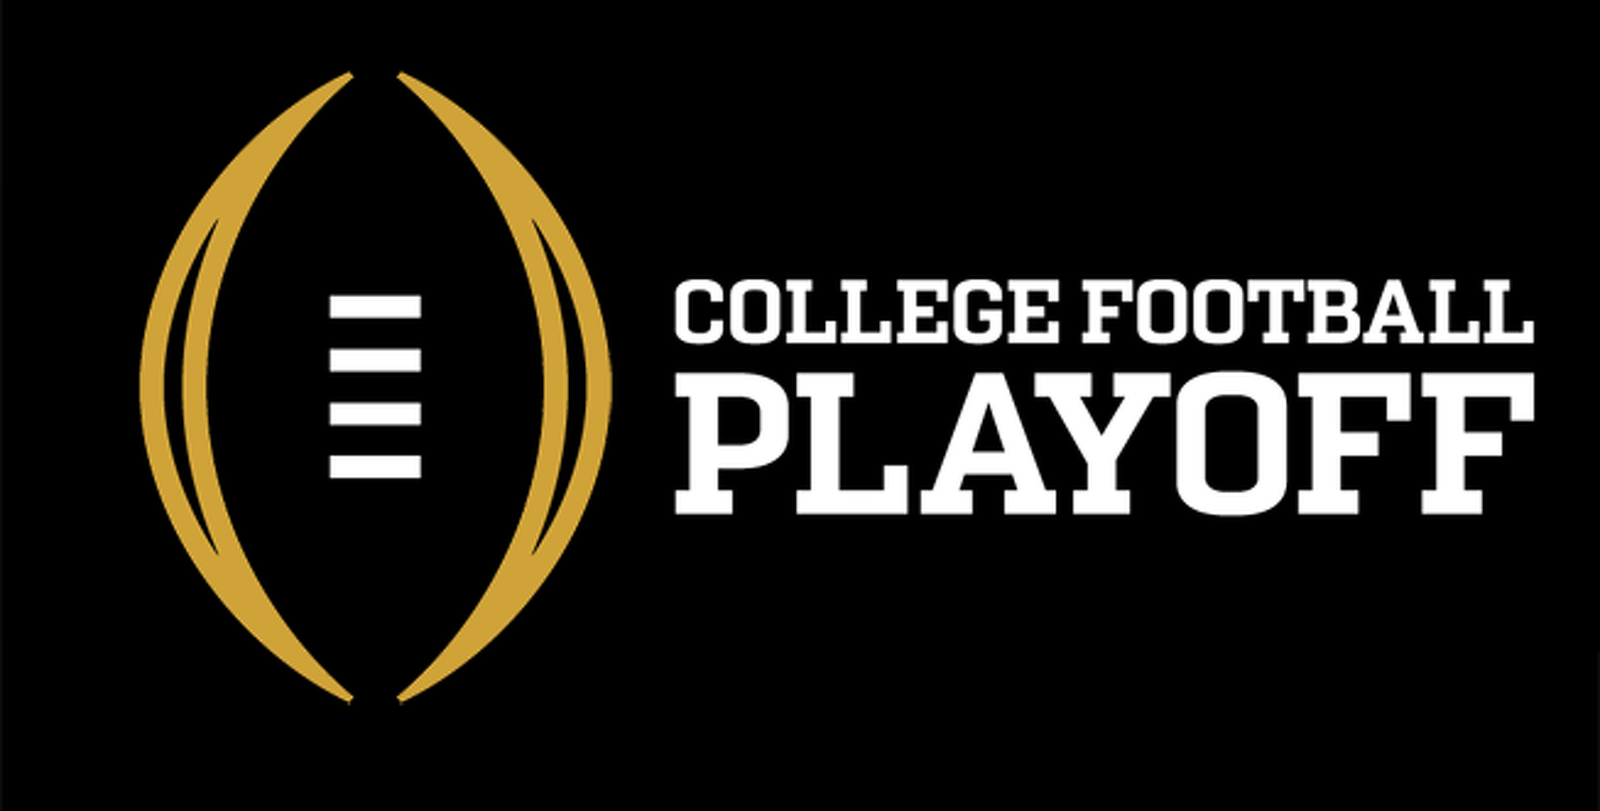 State College, PA - Suing for an 8-Team College Football Playoff